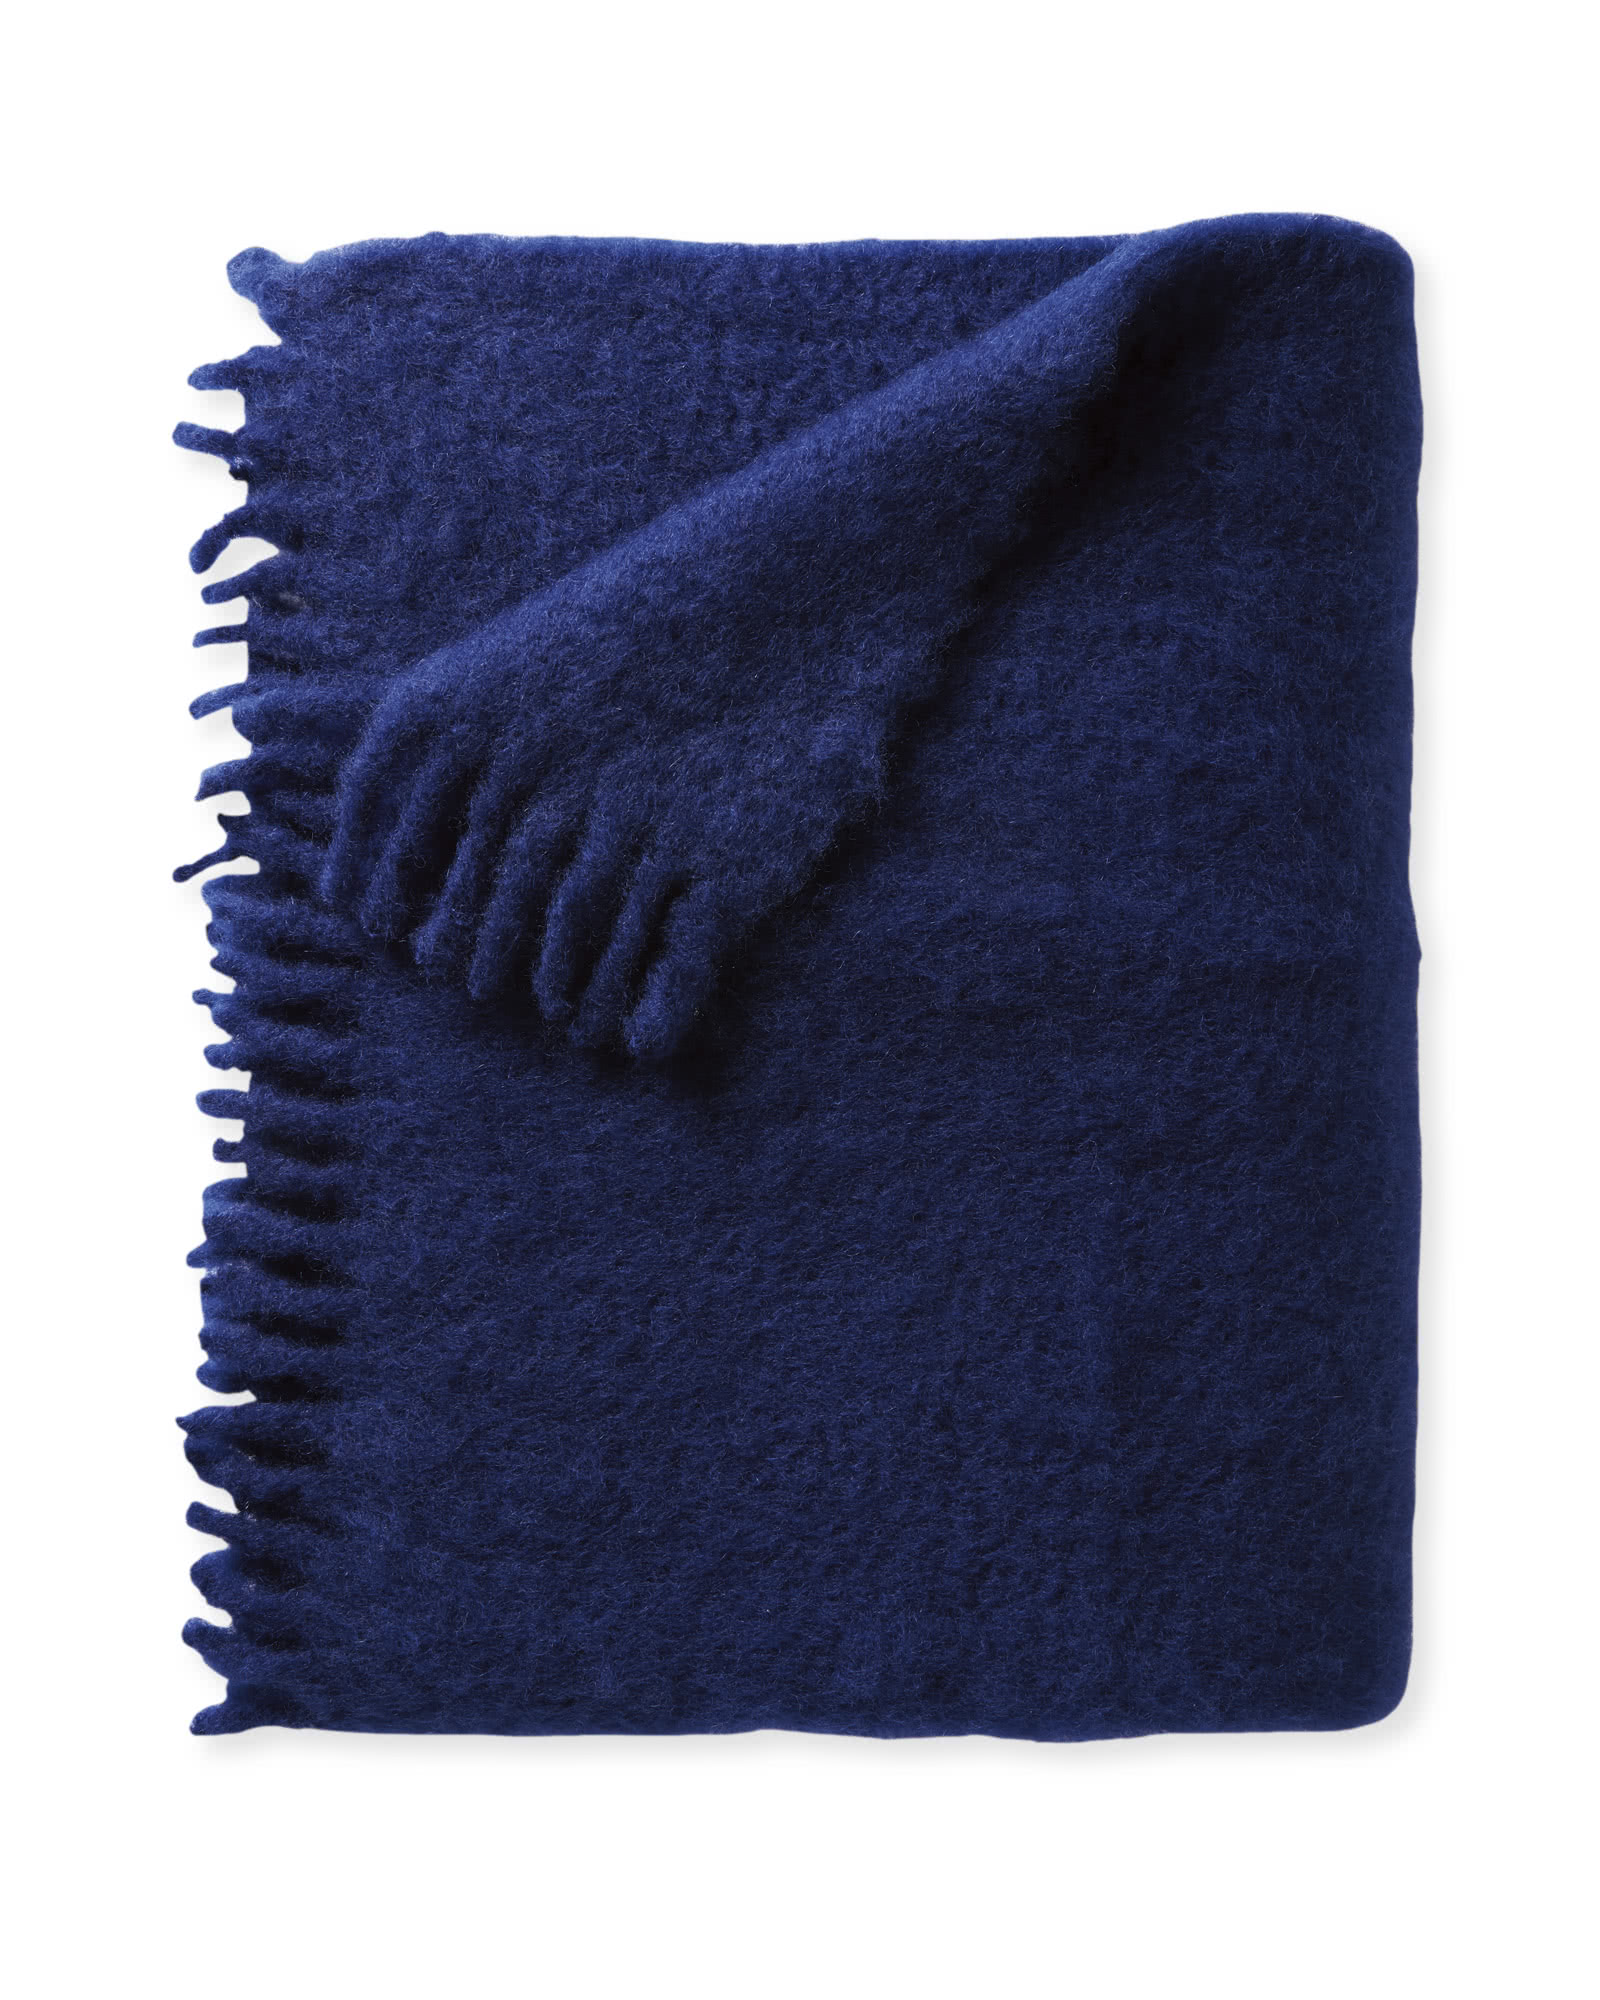 Albion Mohair Throw, Navy